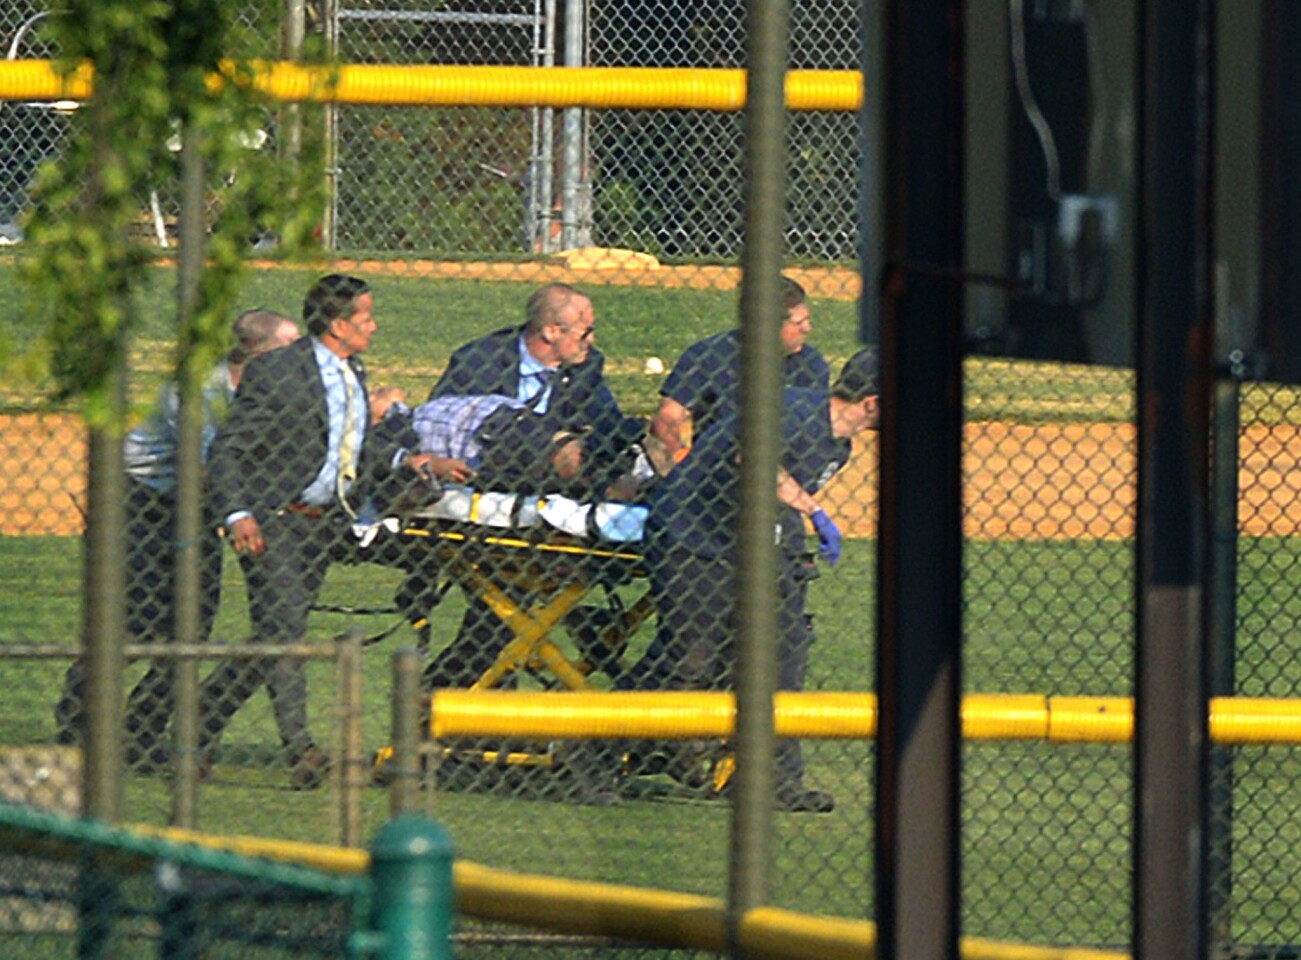 A unidentified shooting victim is rushed to a helicopter after a gunman open fire at a Republican congressional baseball practice Wednesday morning in Alexandria.